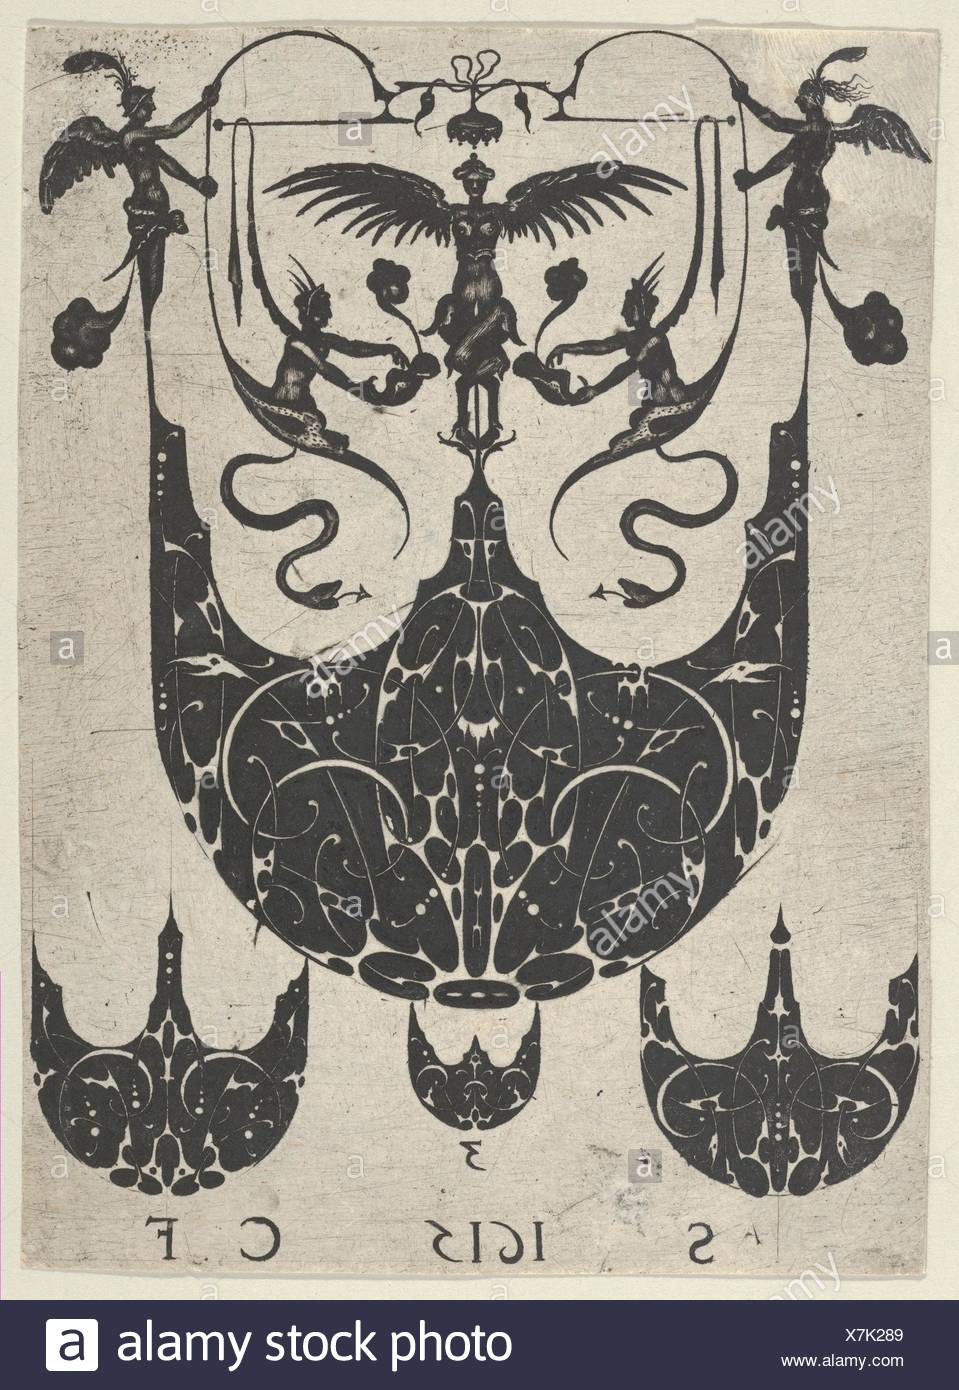 Blackwork Print with a Bezel Supporting Grotesques Above Three Smaller Bezels, from a Series of Blackwork Prints for Goldsmiths' Work. Artist: - Stock Image